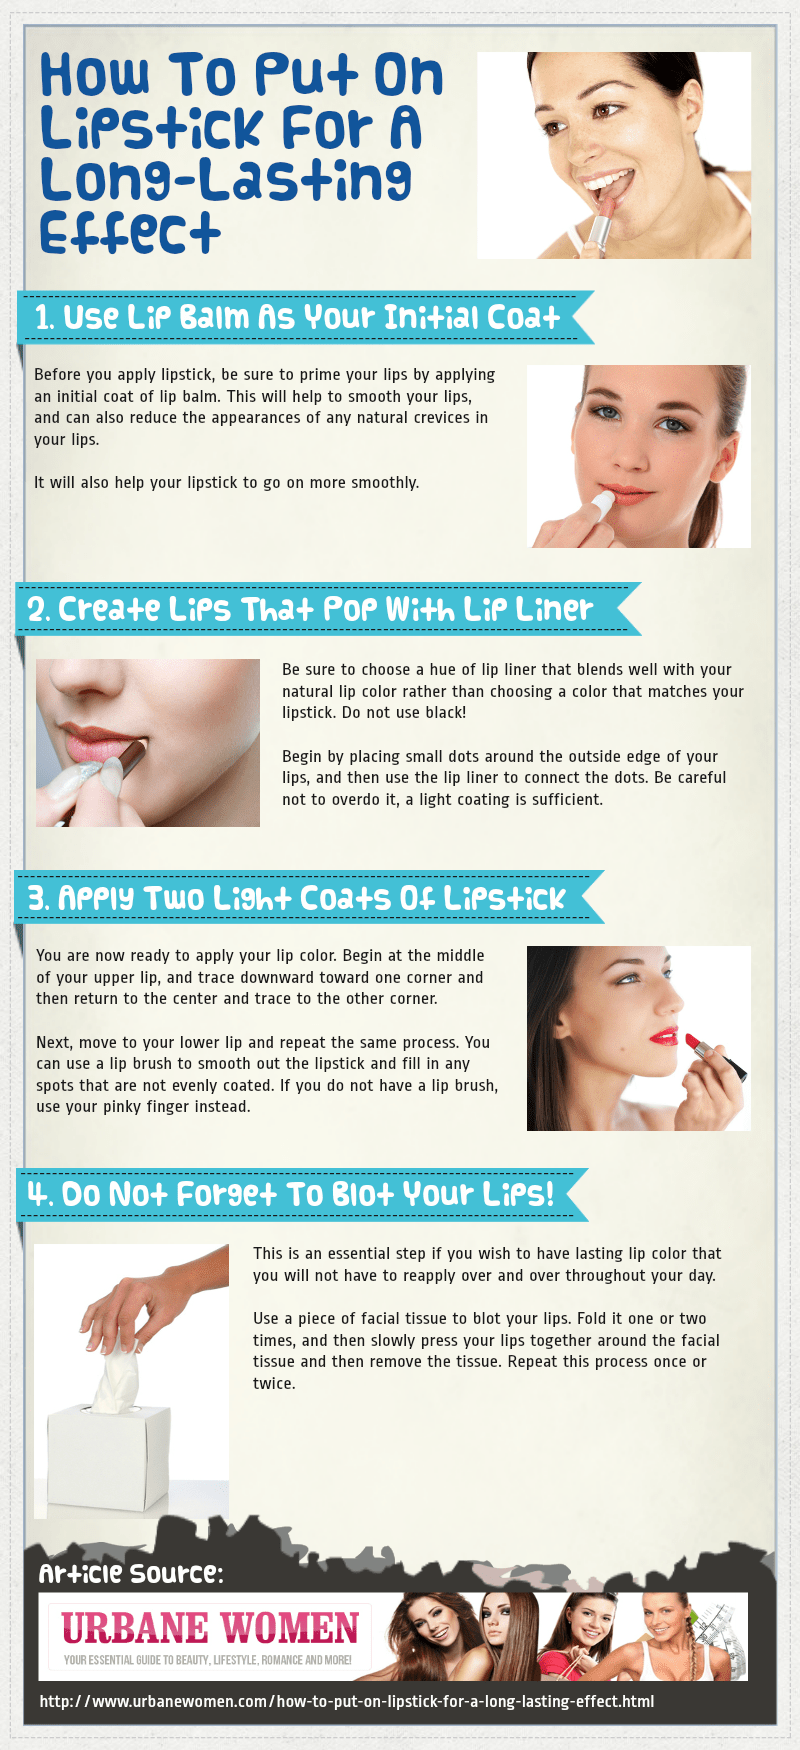 How To Put On Lipstick For A Long-Lasting Effect